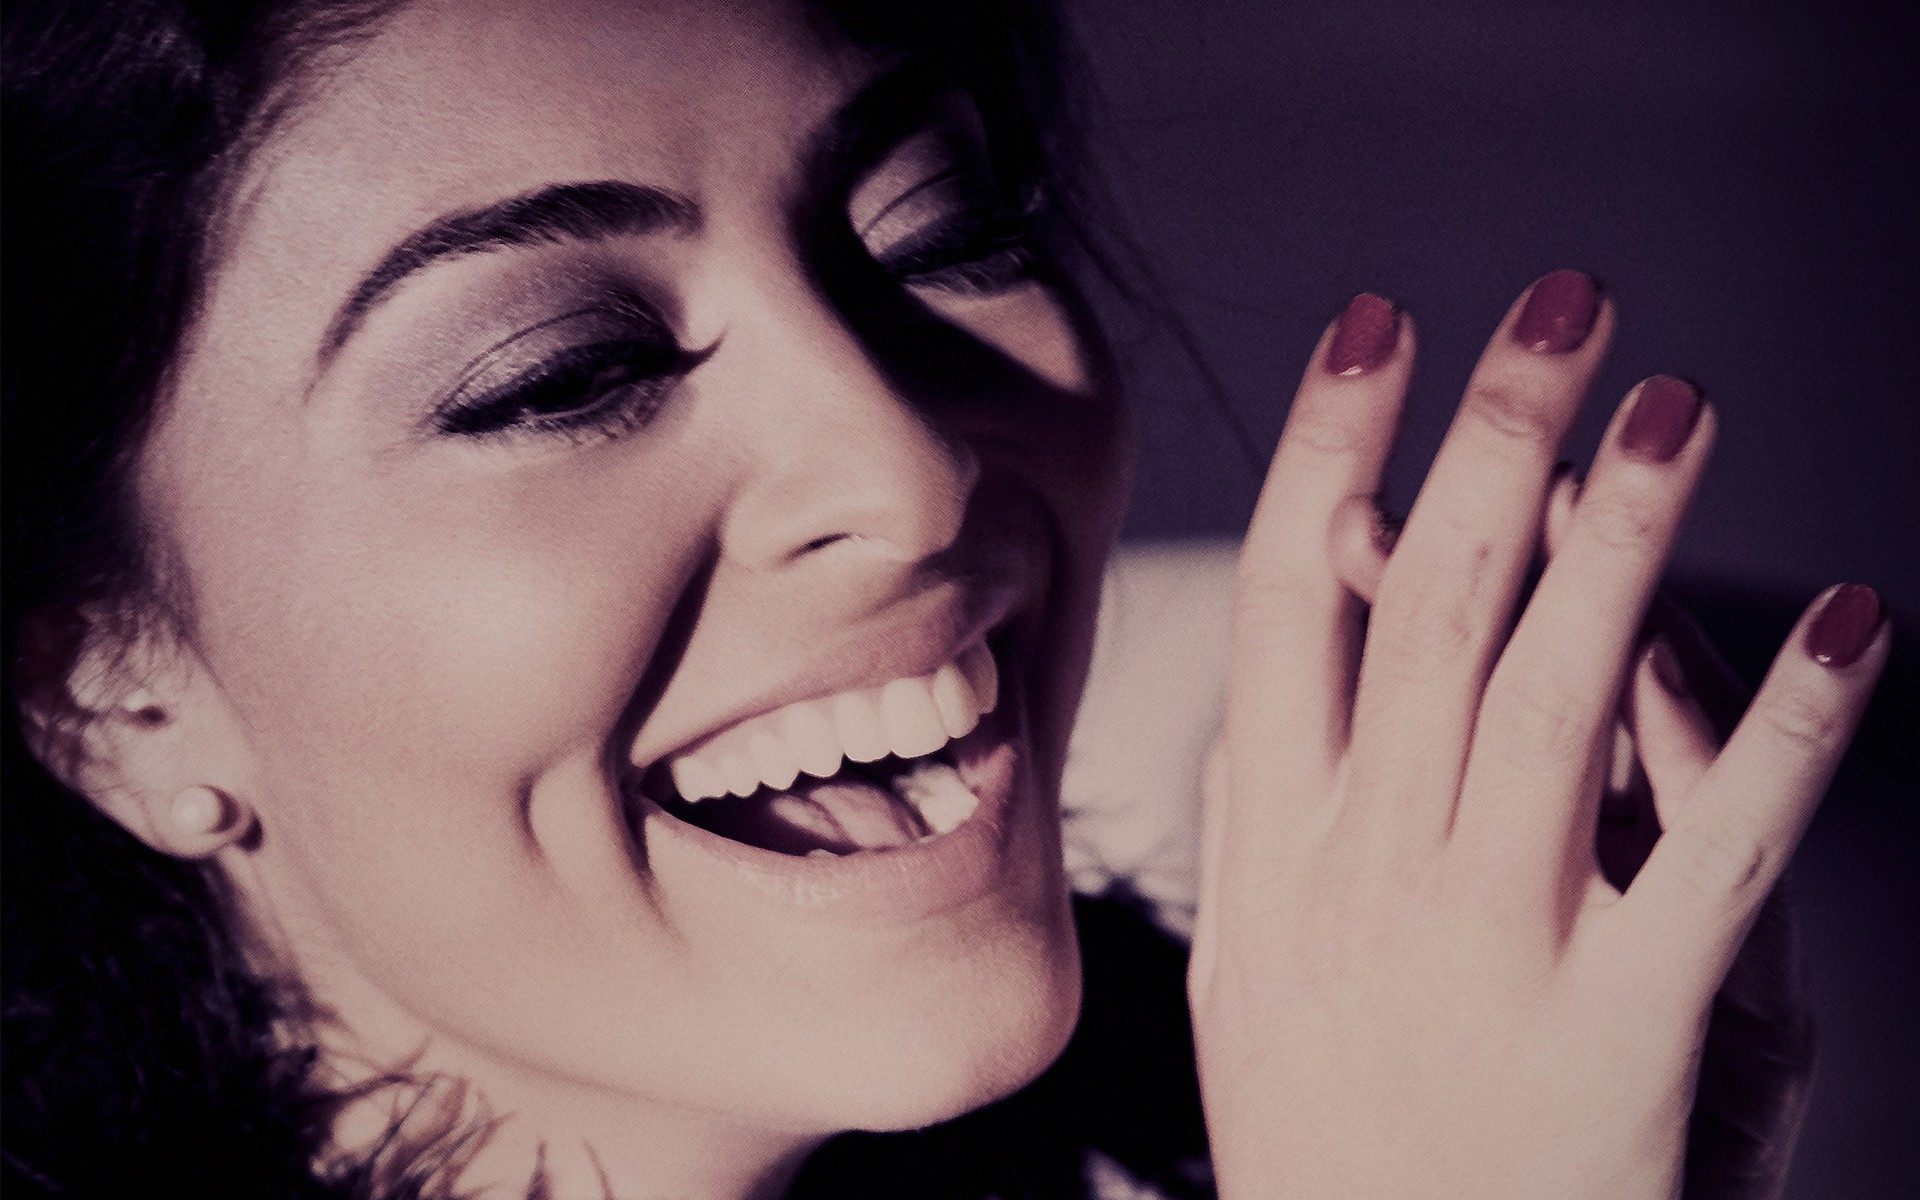 women-laughing-faces-Juliana-Paes-dimples-black-hair-_58987-52